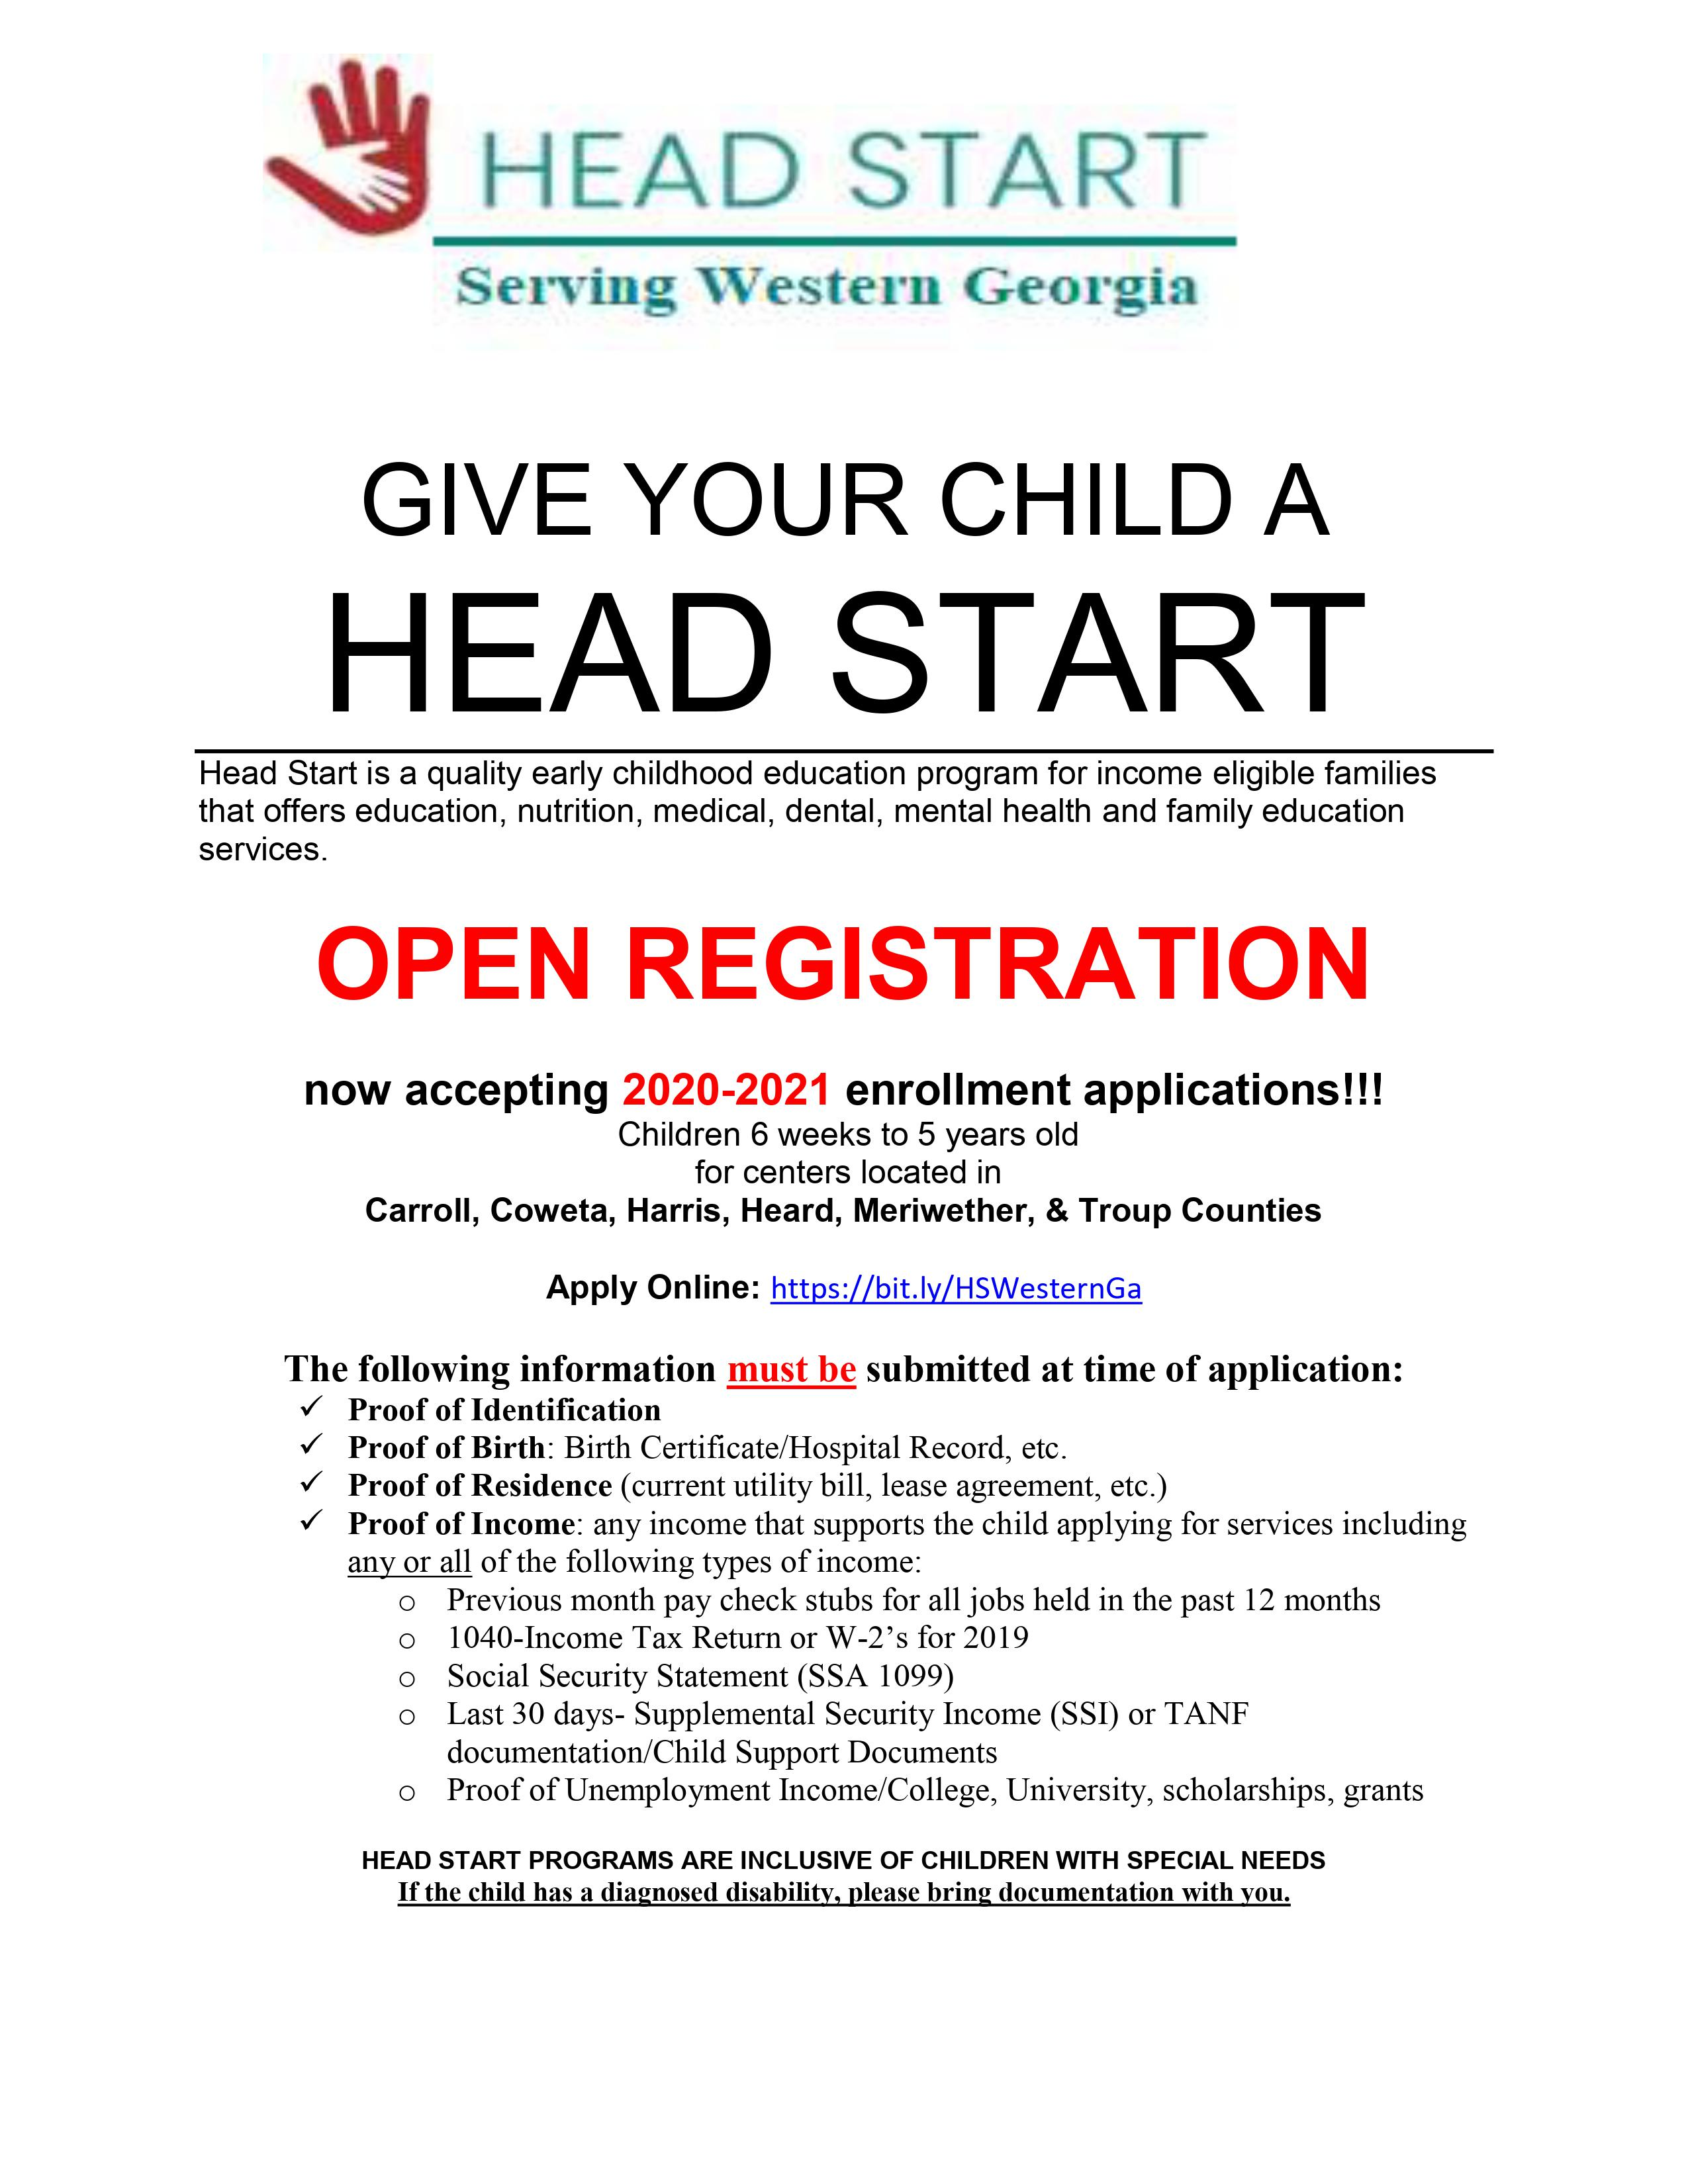 Open Enrollment – Head Start Servicing Western Georgia